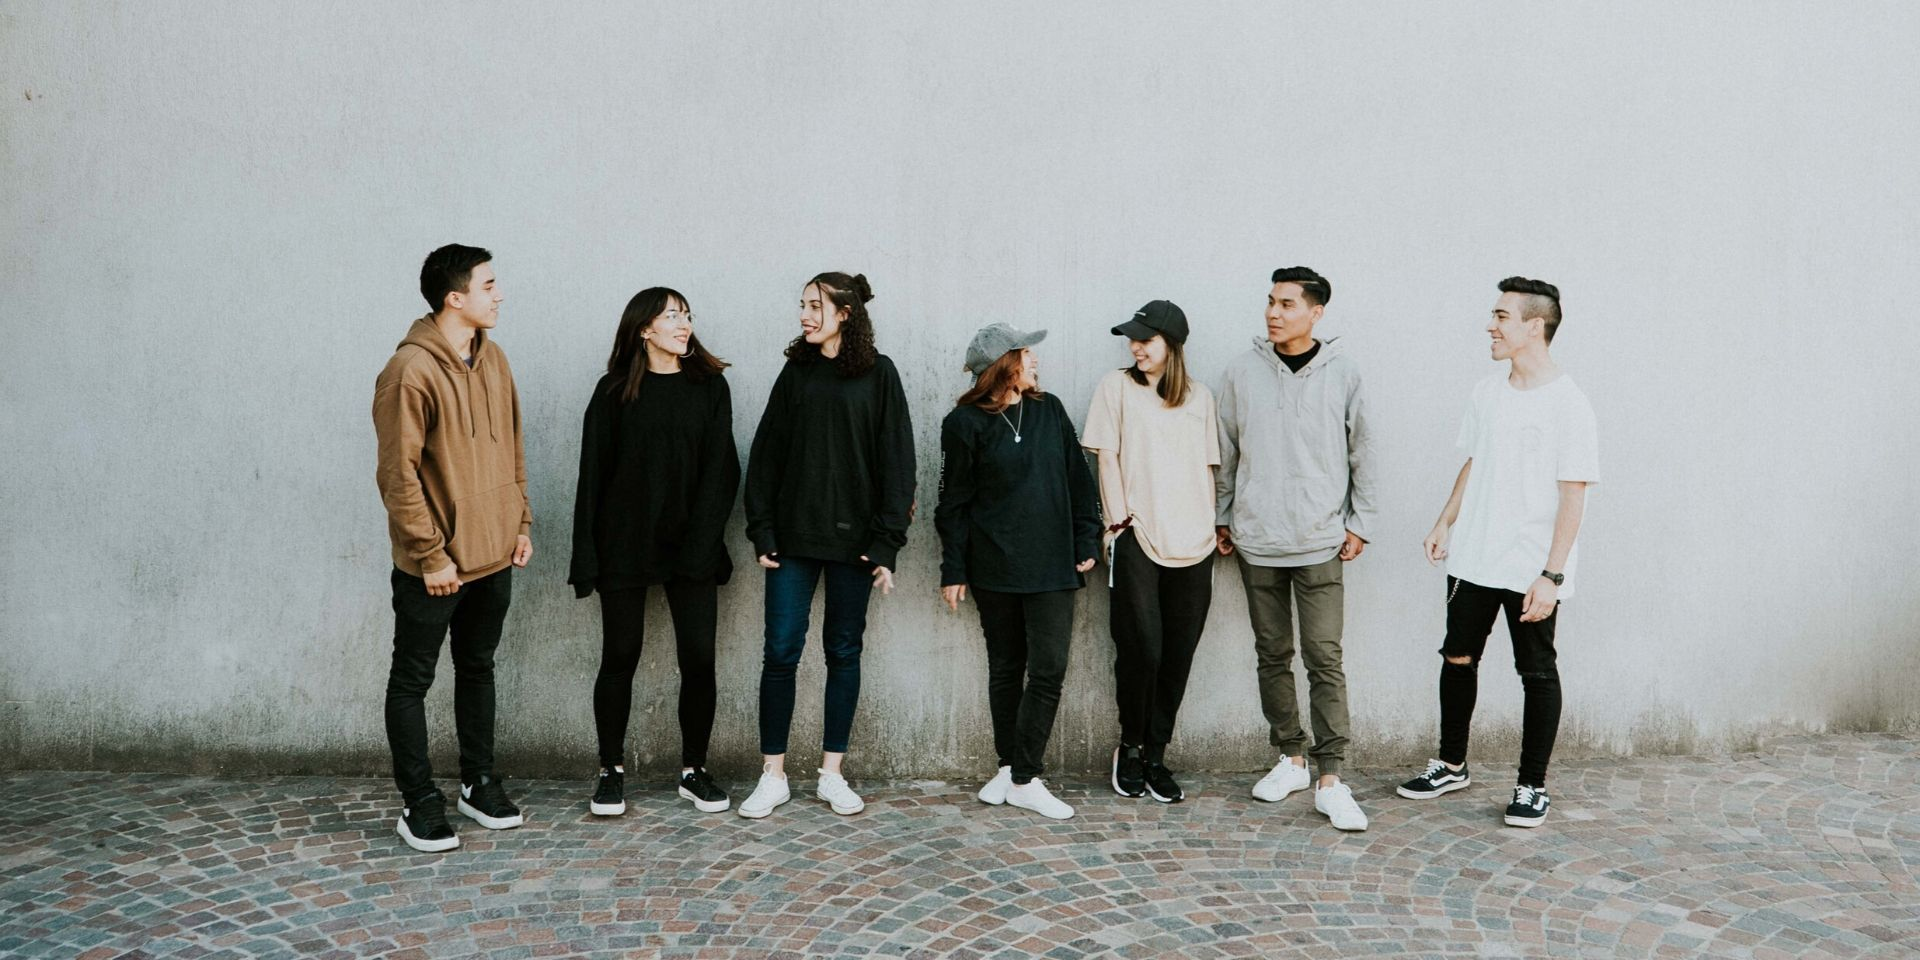 A group of youth by a wall